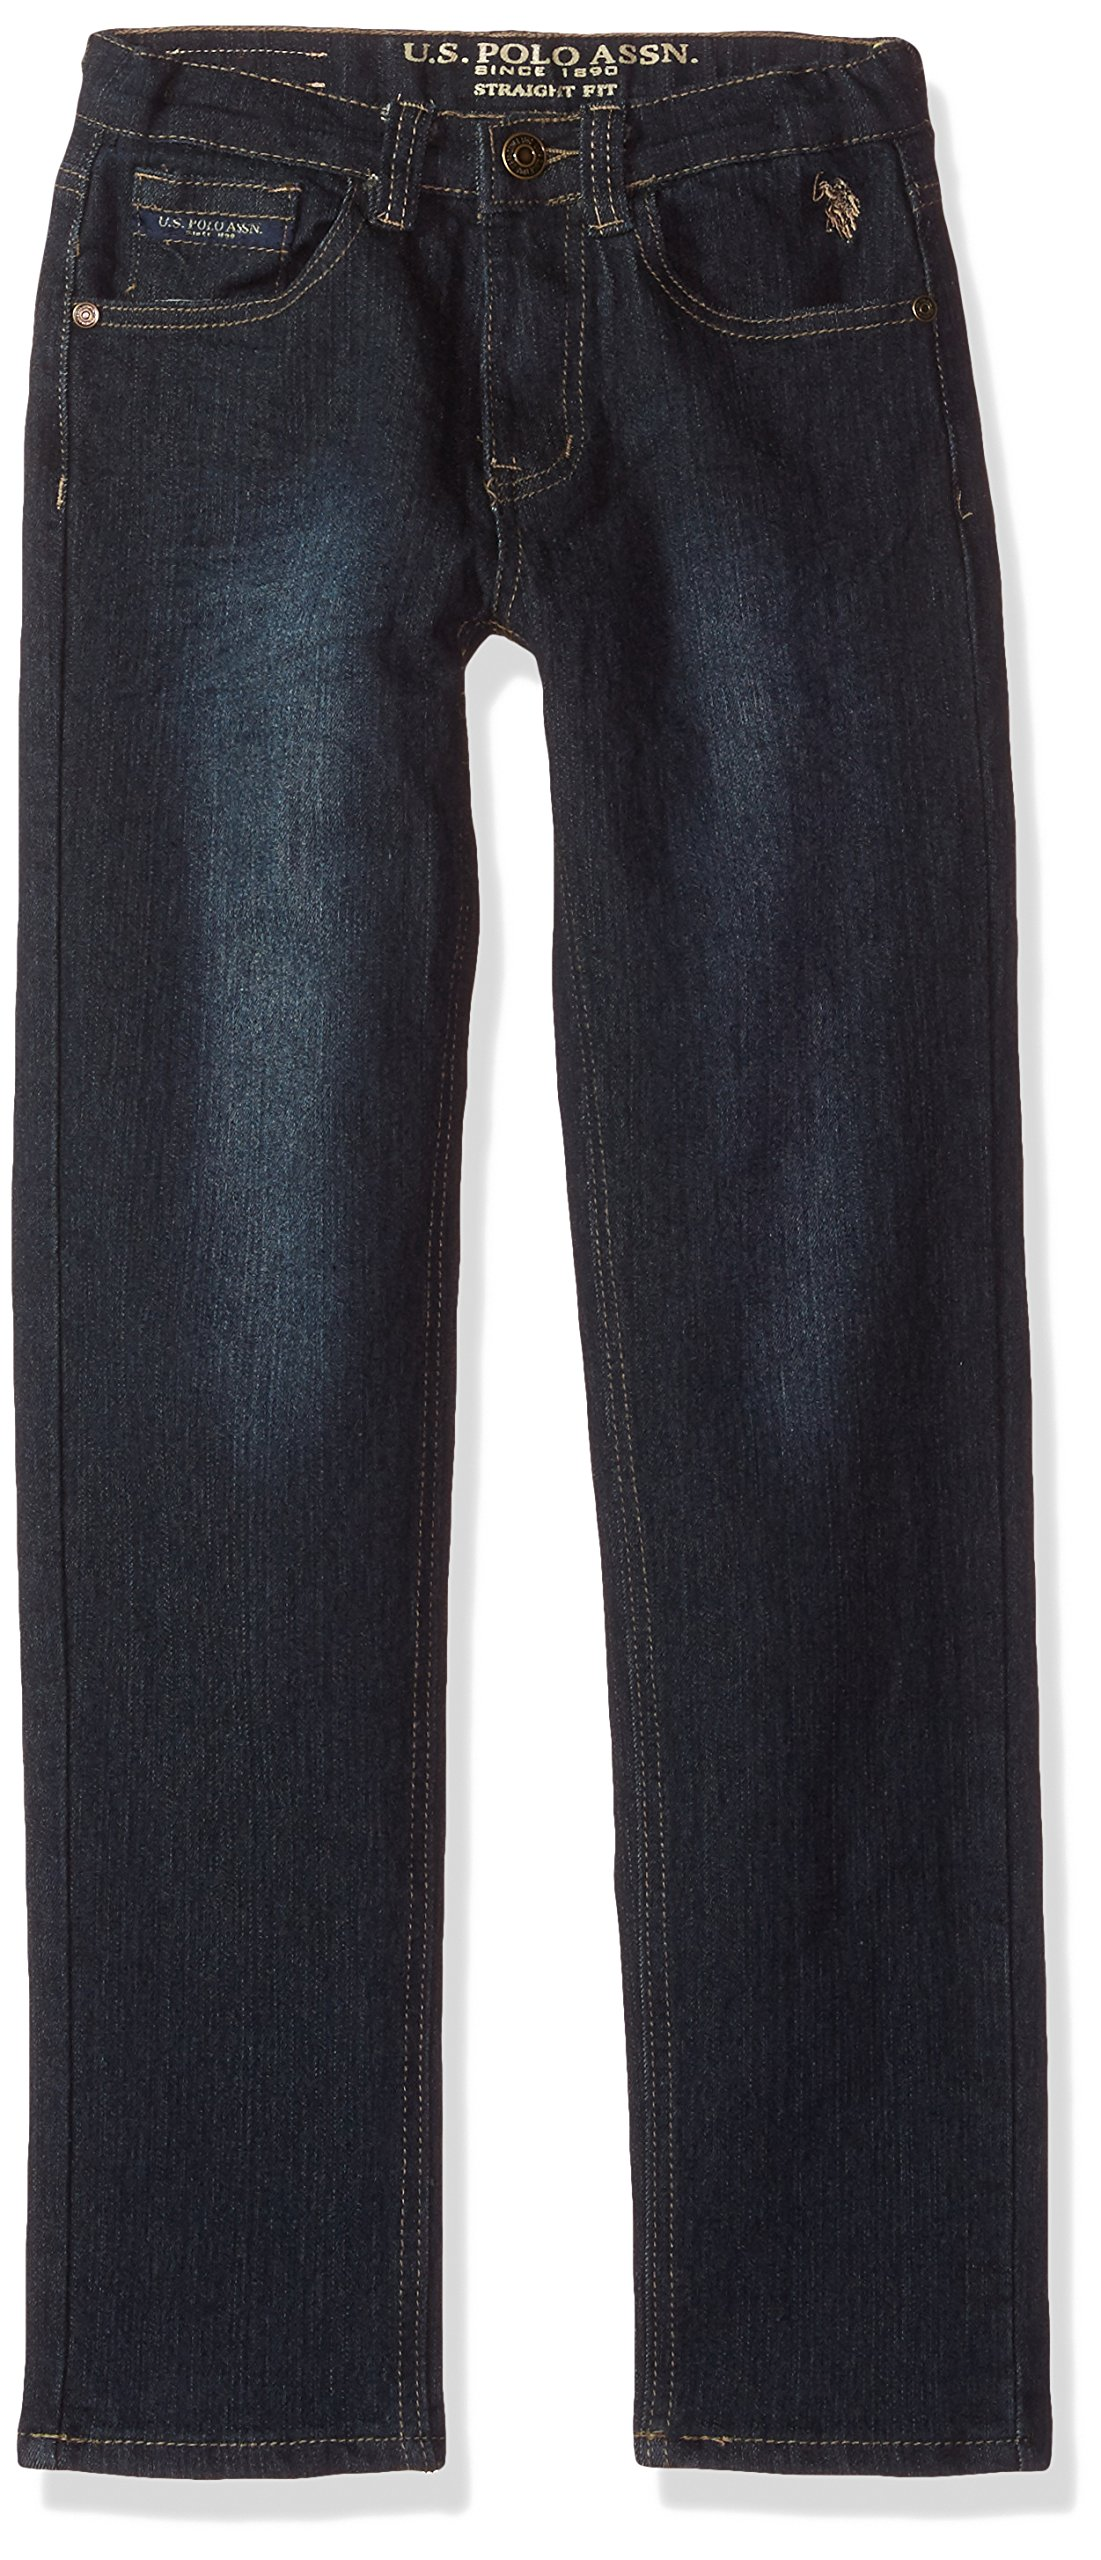 U.S. Polo Assn. Big Boys' Straight Fit Jean